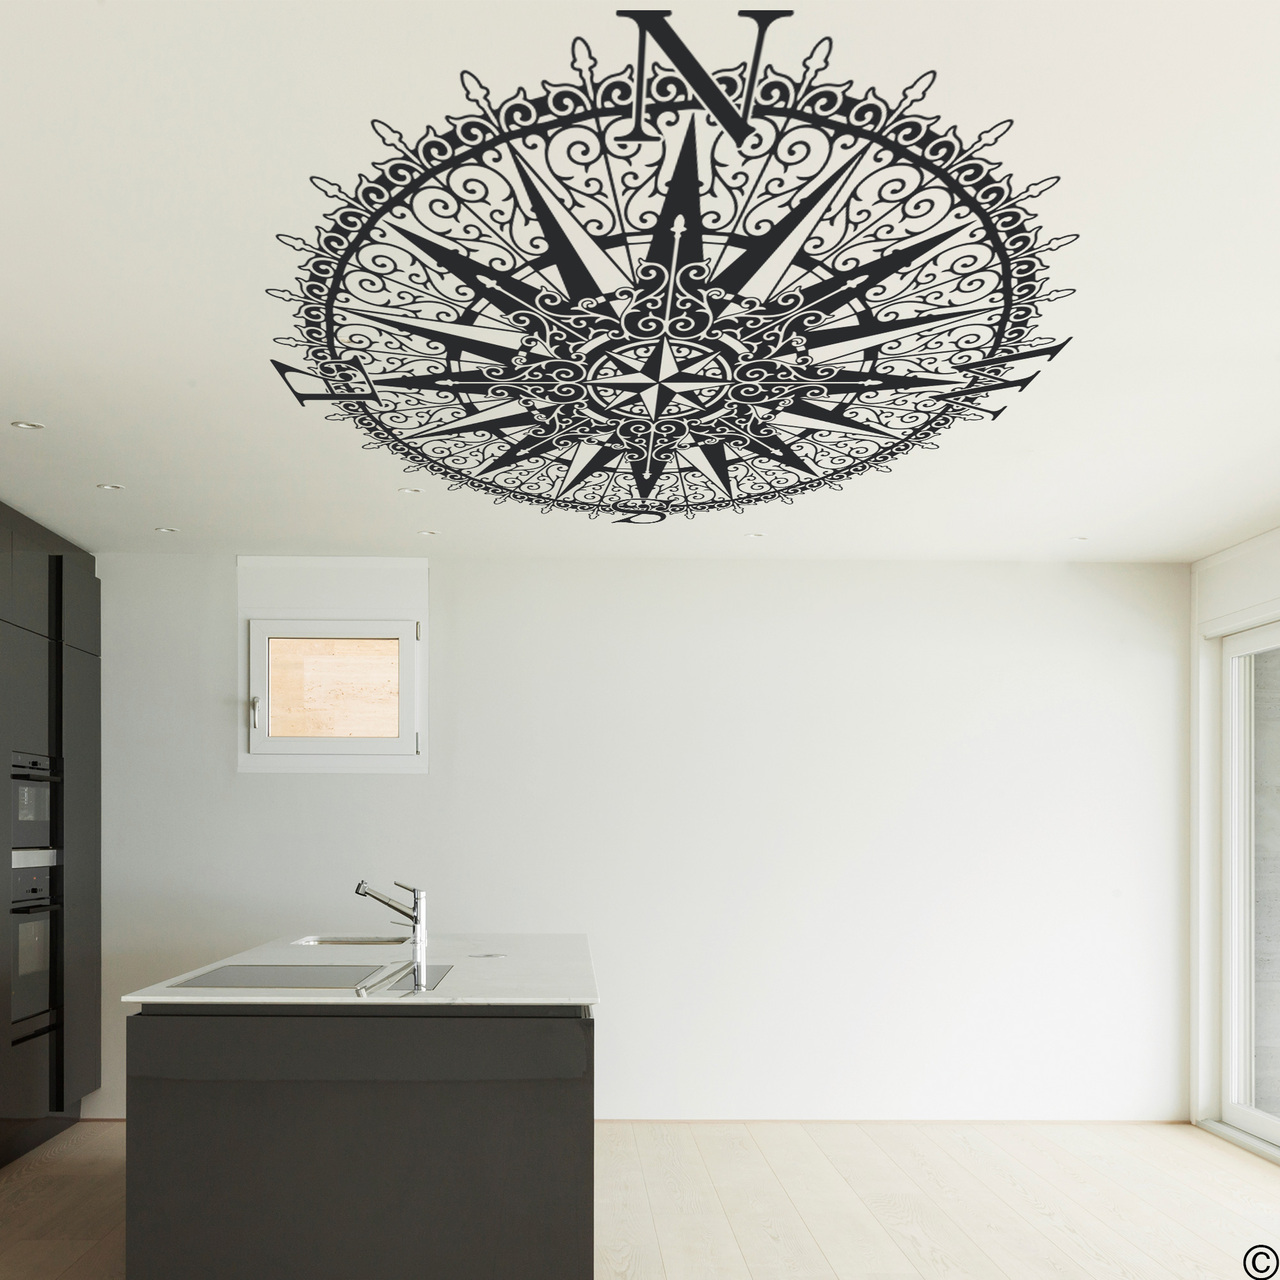 The Sherlock compass ceiling decal, shown here in black color.